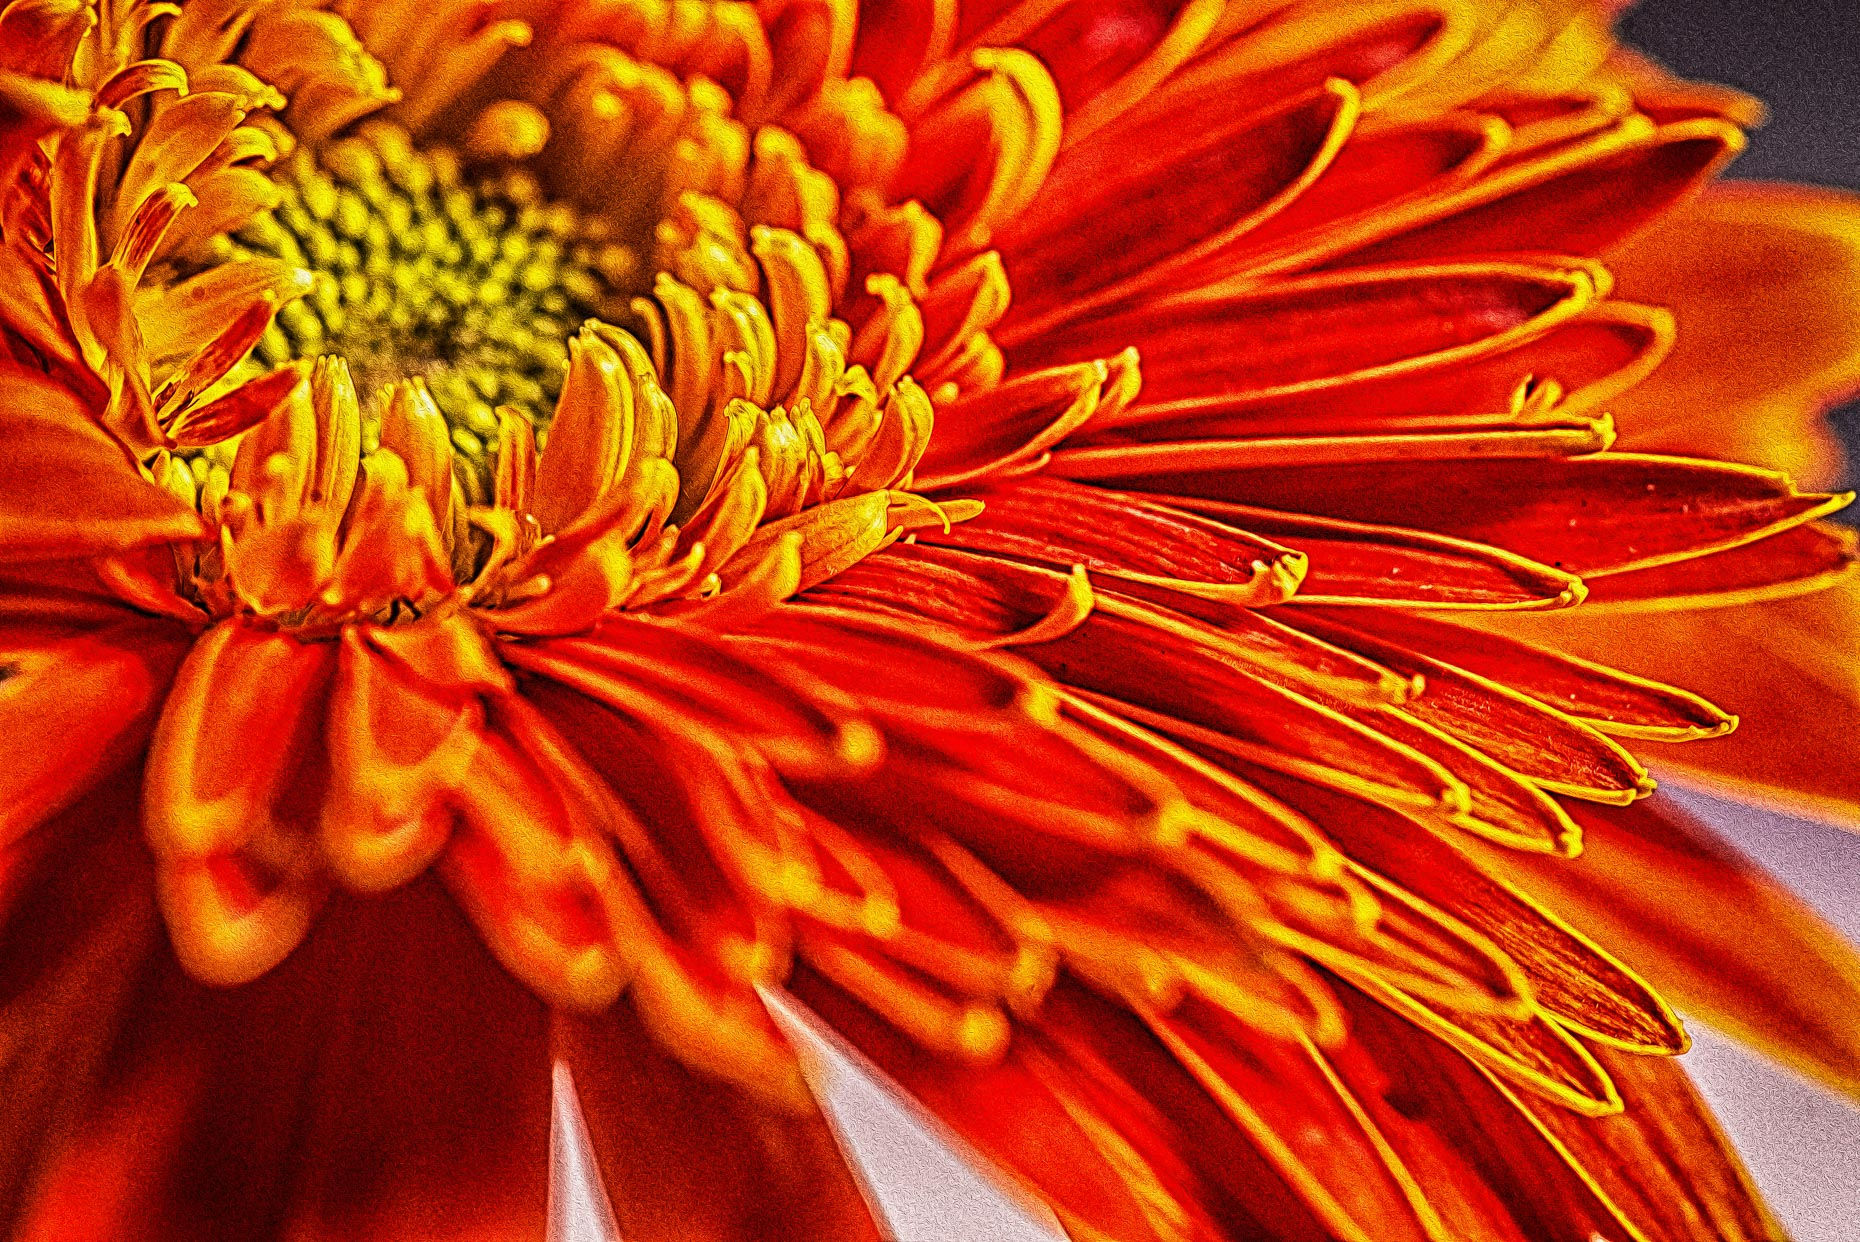 Bright Orange Gerber Daisy Flower #2